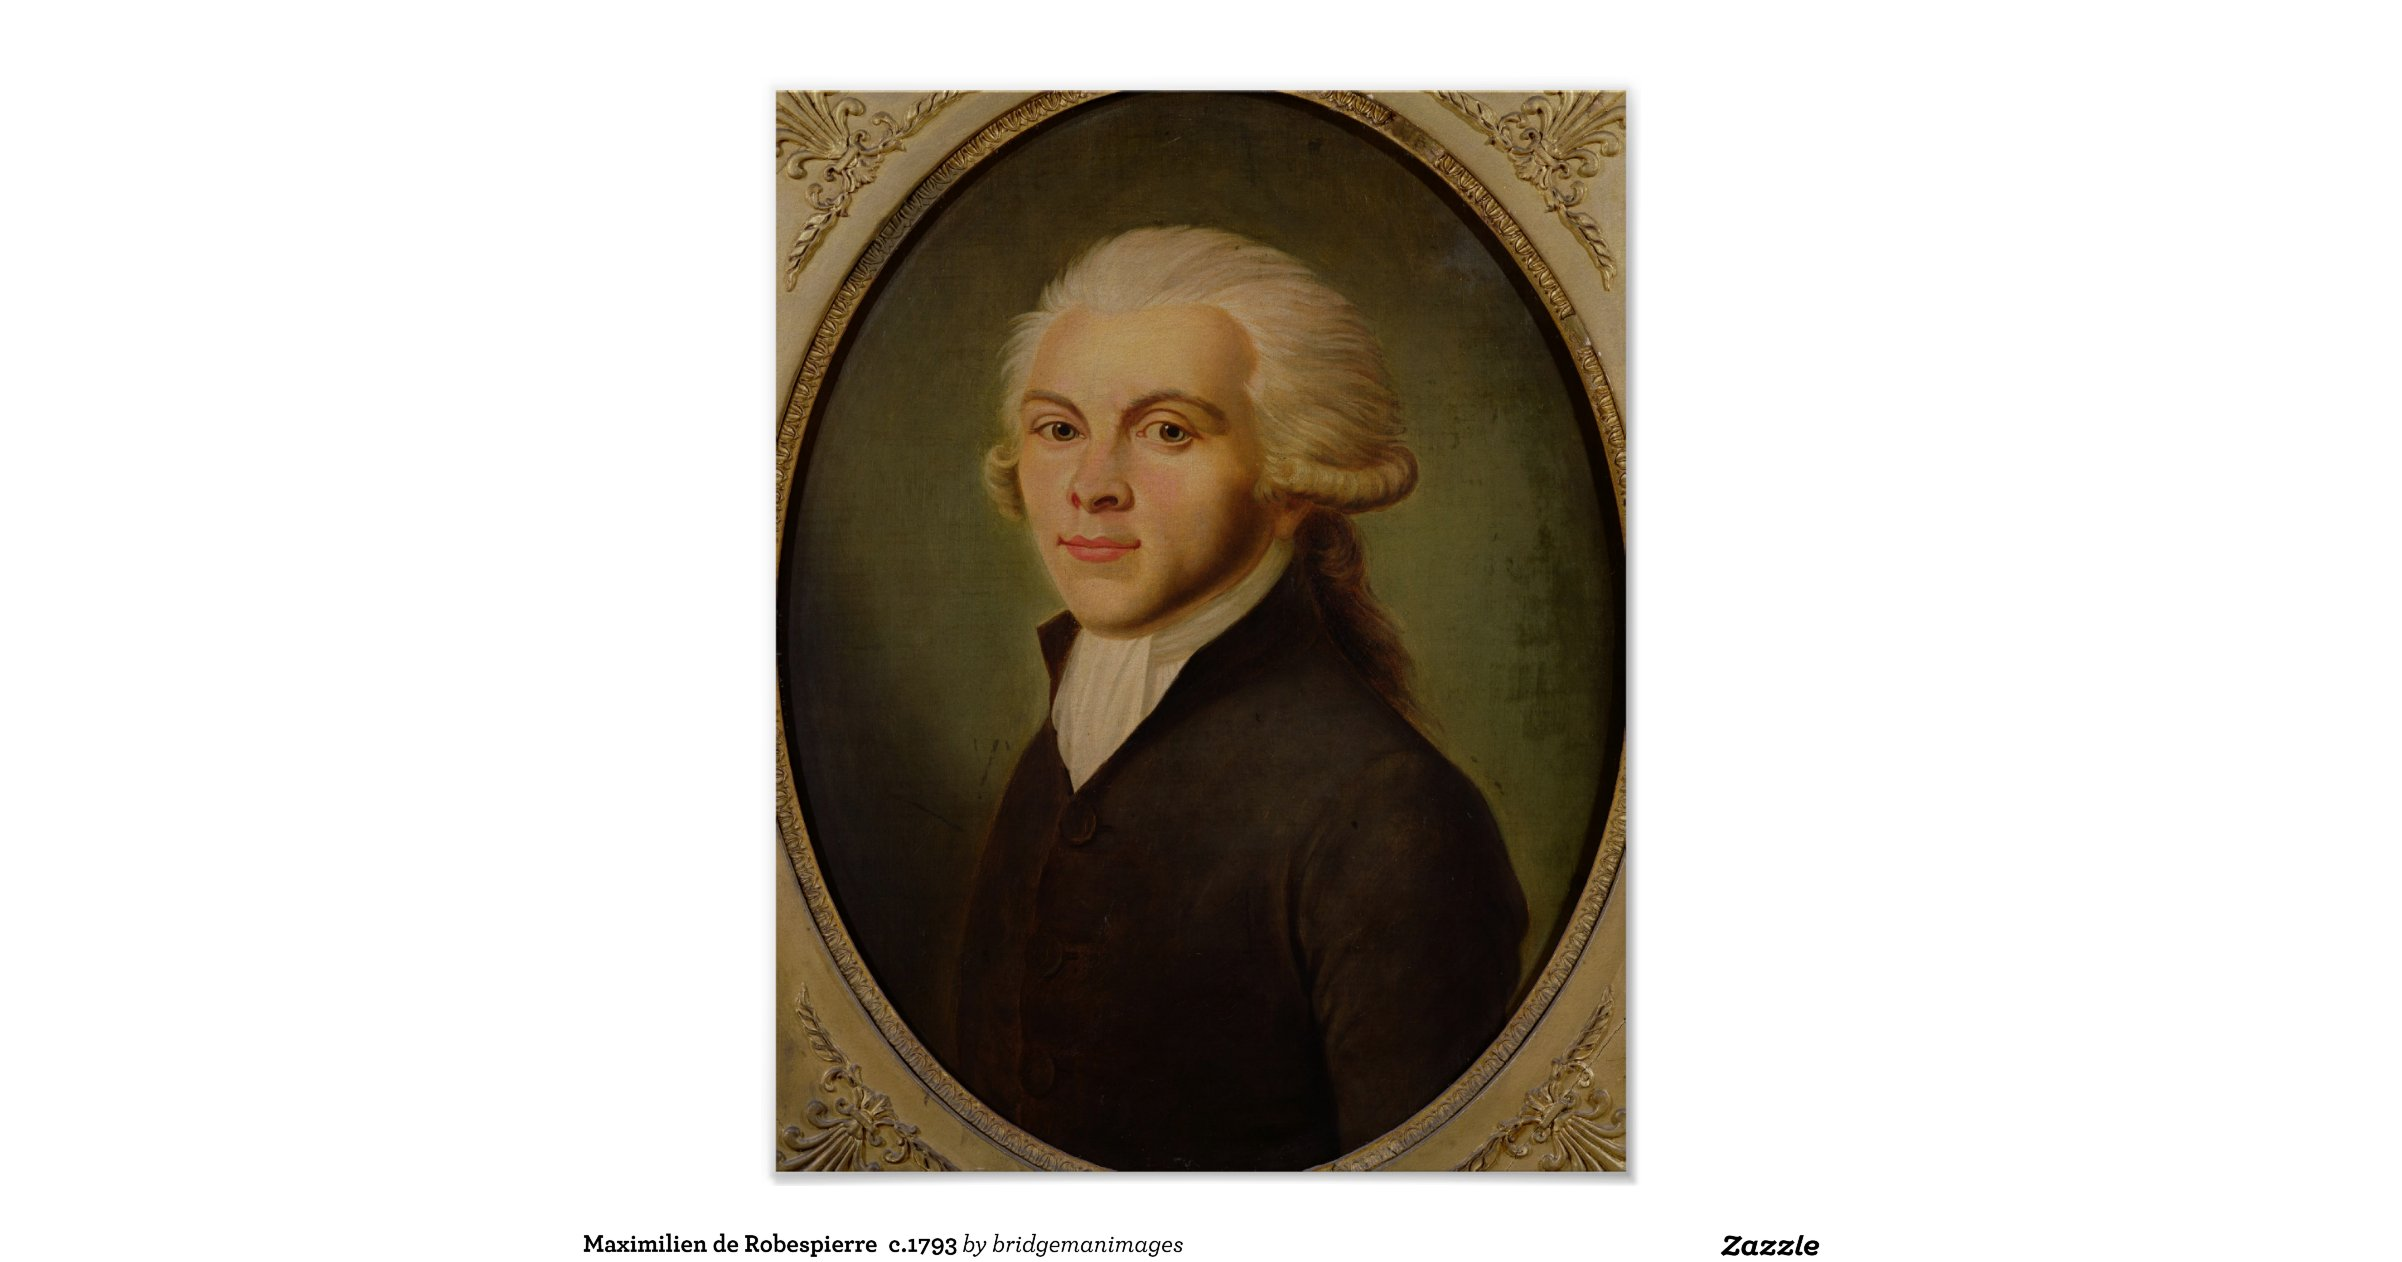 robespierre essay Maximilien robespierre: maximilien robespierre, radical jacobin leader and one of the principal figures of the french revolution.